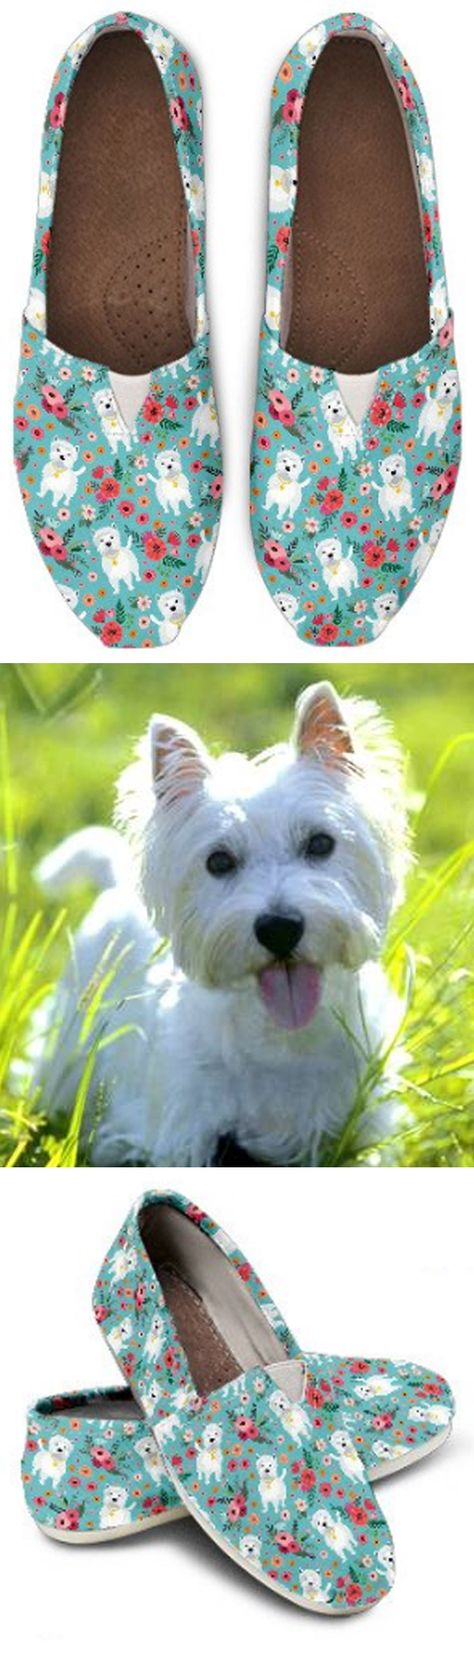 Casual Comfortable Sneakers Running Shoes West Highland White Terrier On Pink Print Running Shoes for Women